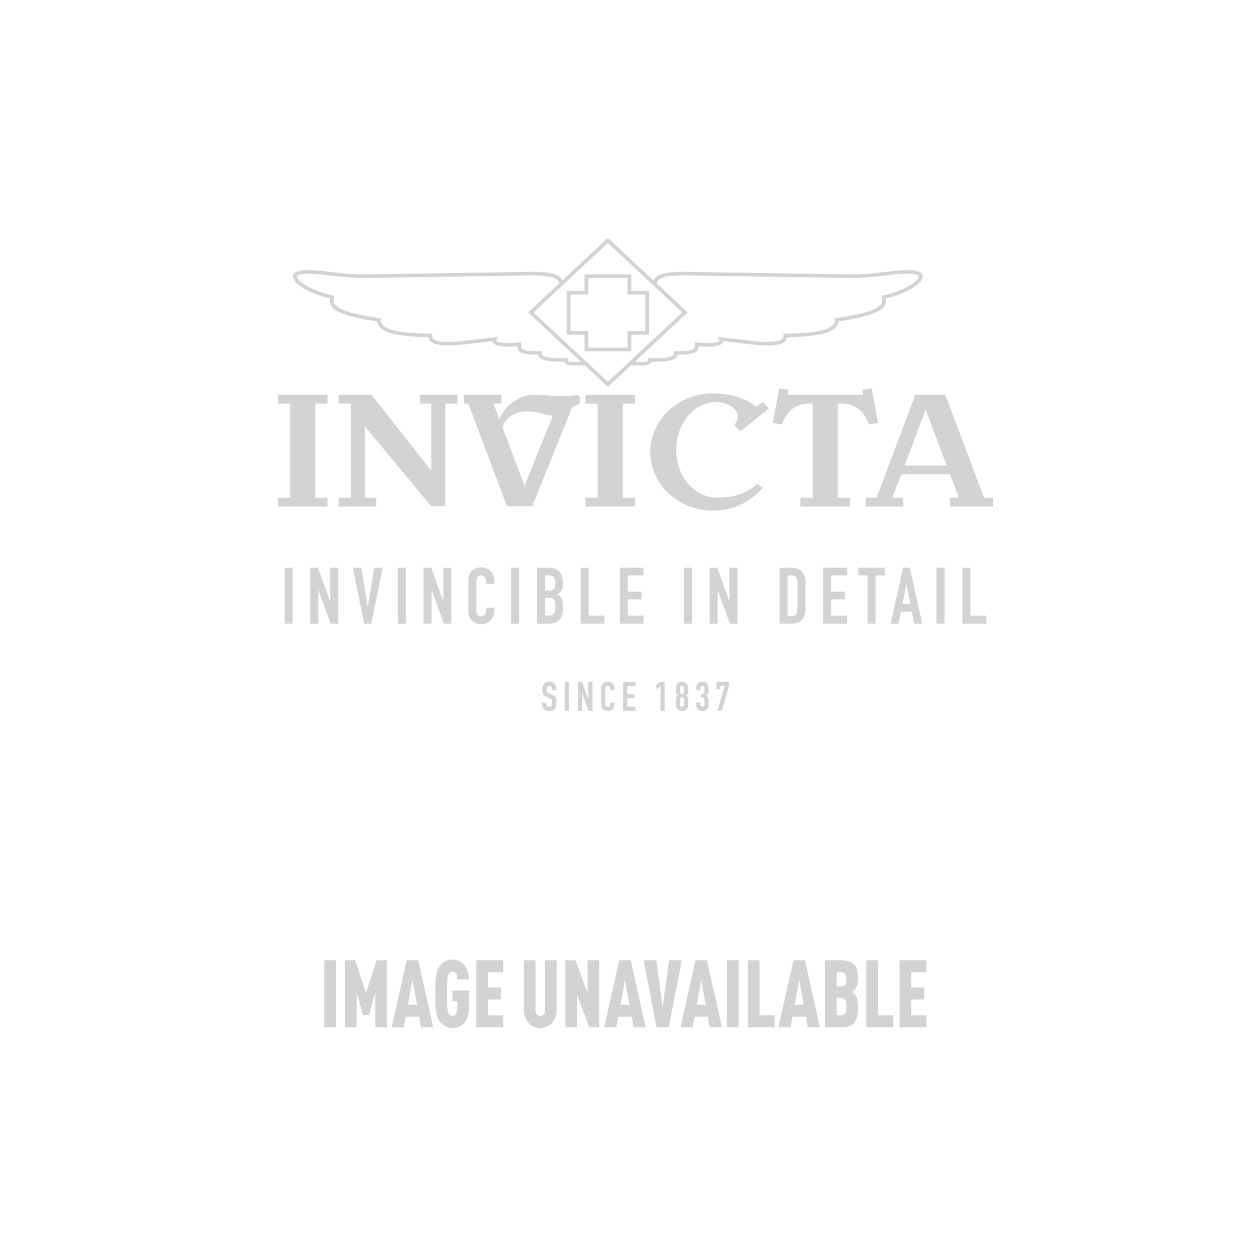 Invicta Vintage Swiss Movement Quartz Watch - Gold case with Beige tone Leather band - Model 18473